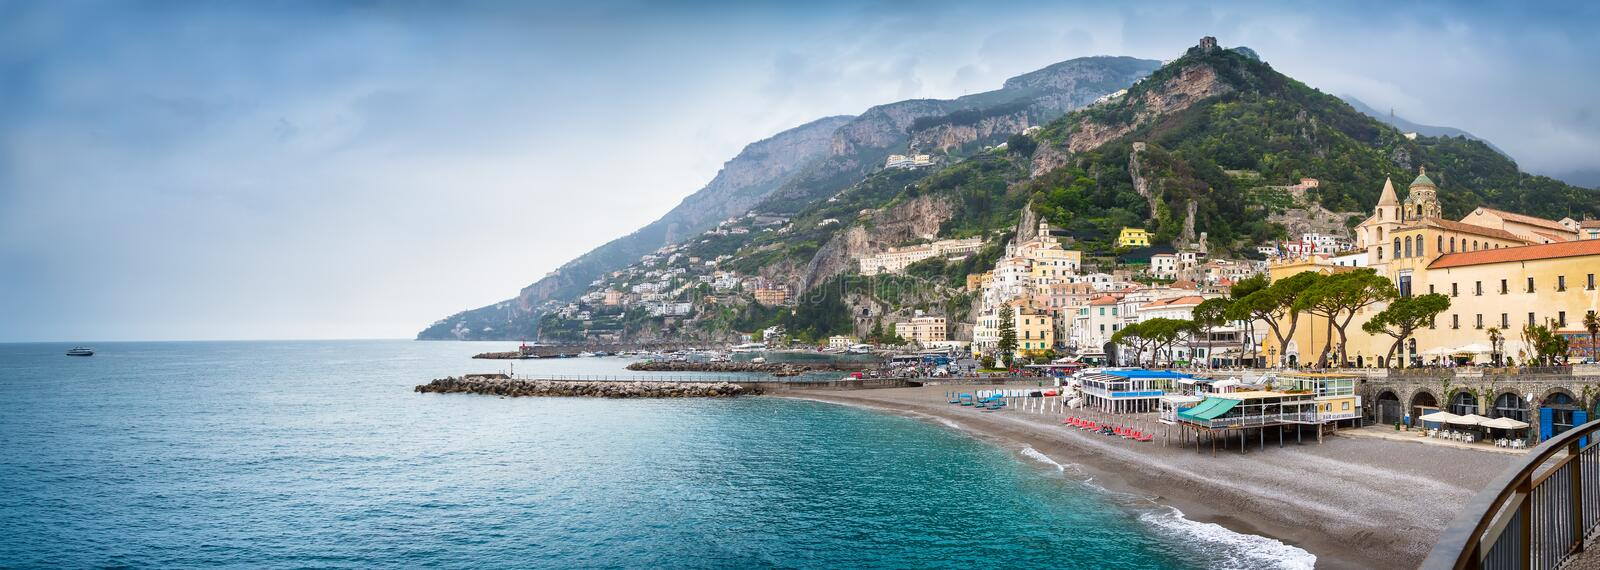 Amalfi, Italy - Panorama of the town on the Amalfi coast royalty free stock image